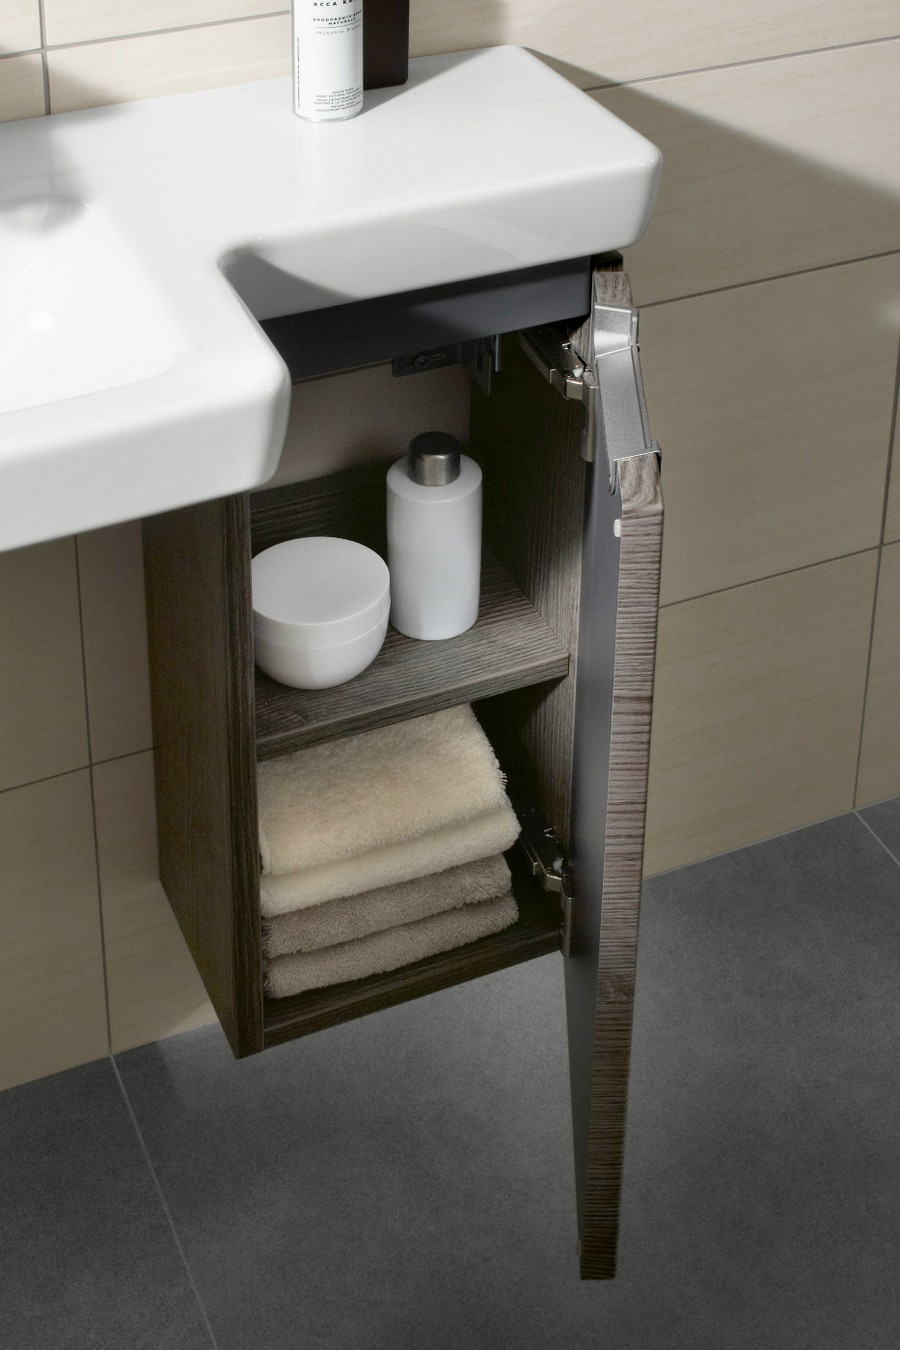 4-4-Villeroy-&-Boch-beige-bathroom-interior-design-wash-basin-vanity-unit-narrow-wall-mounted-cabinet-with-two-shelves-towel-accessories-storage